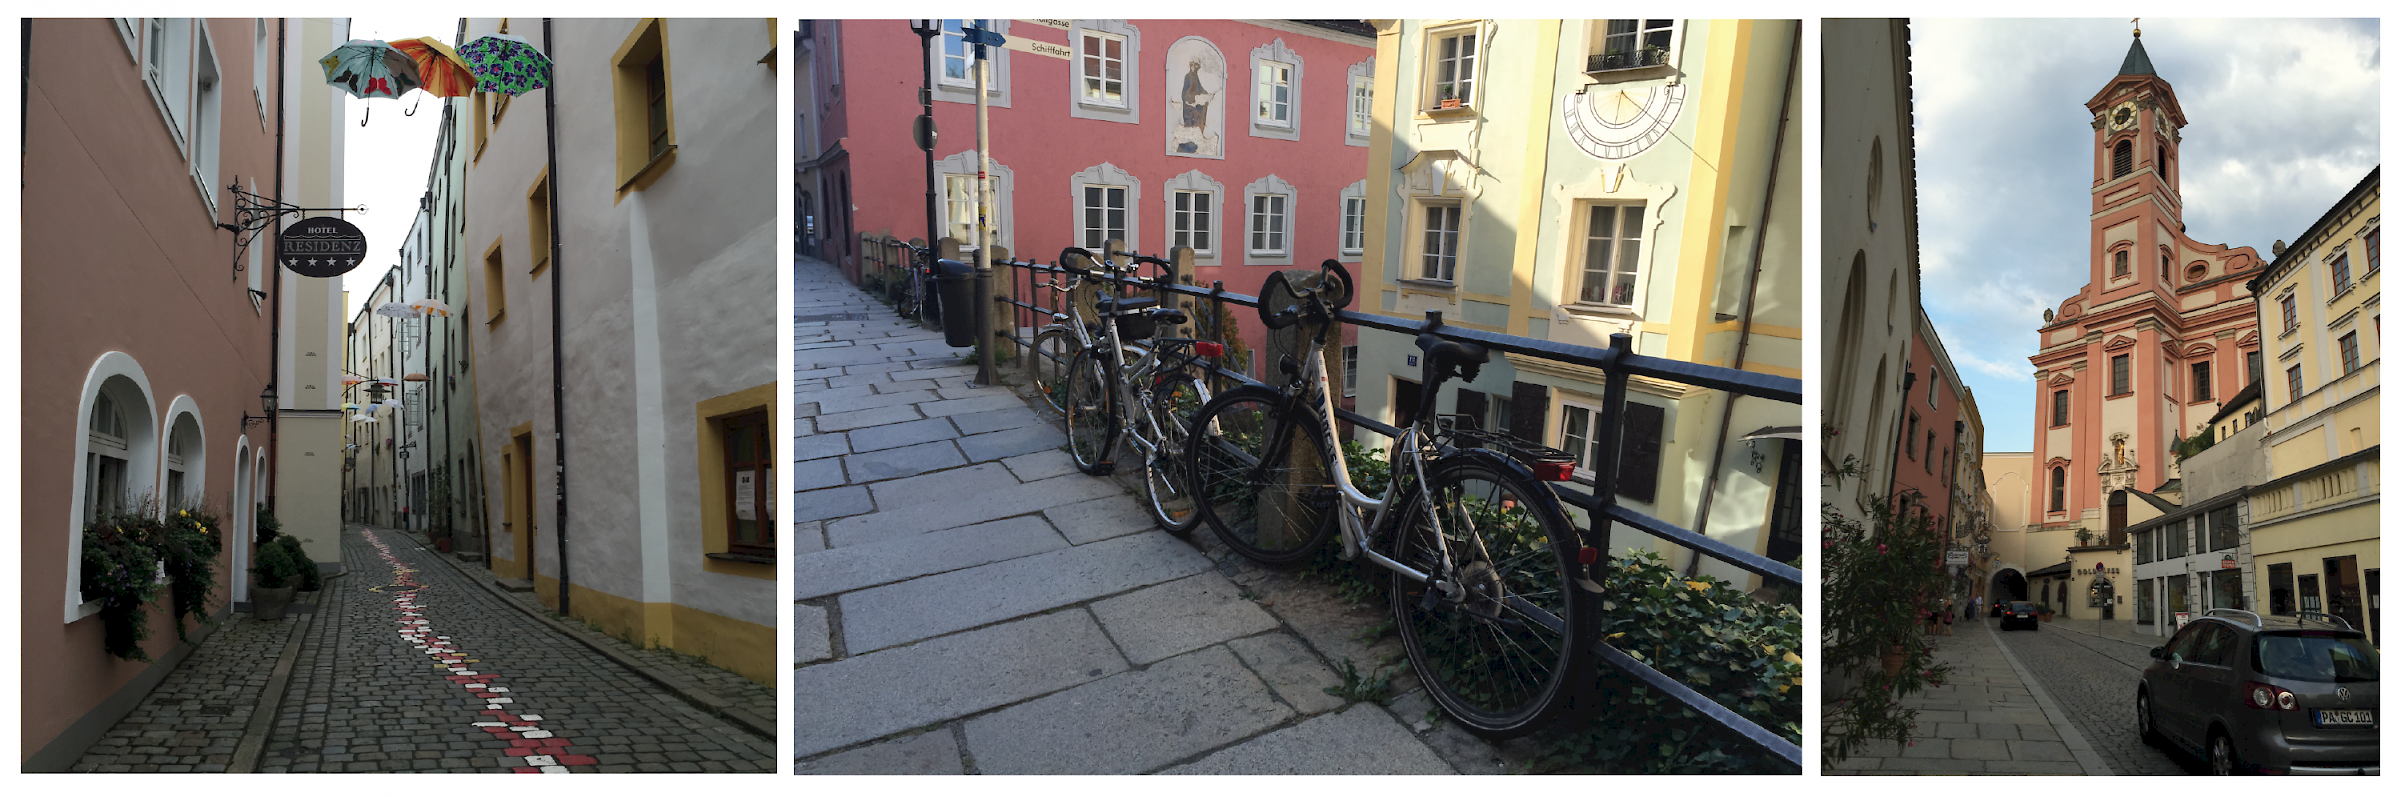 Cobbled streets and beautiful architecture in Passau.